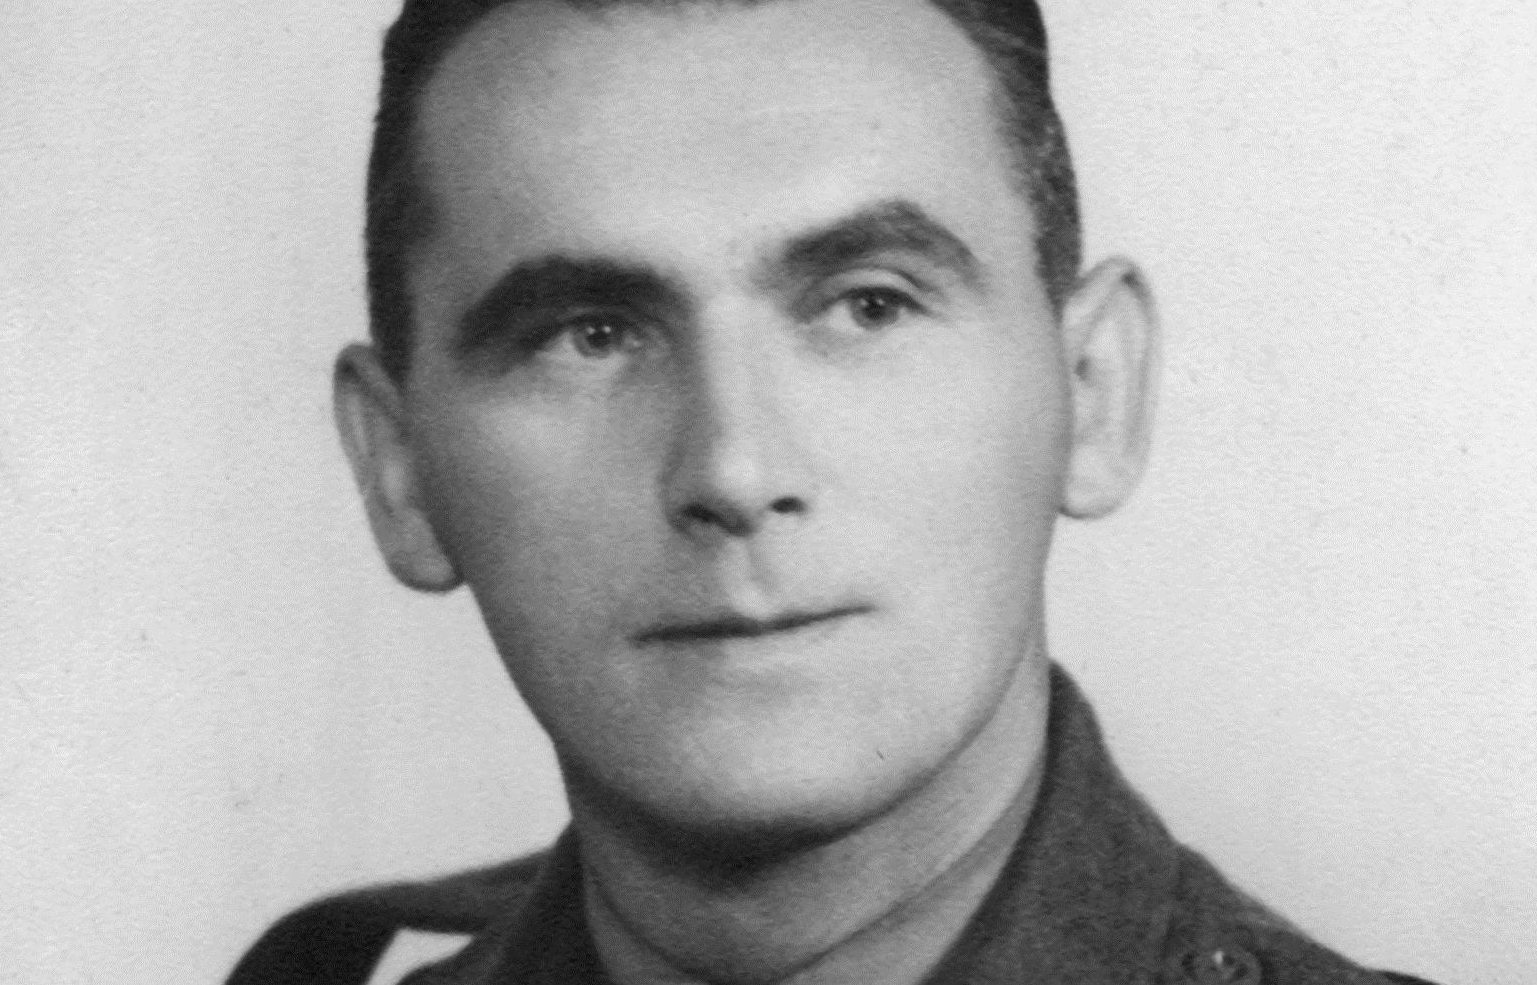 Tom Guttridge was captured during the Dunkirk evacuation in 1940